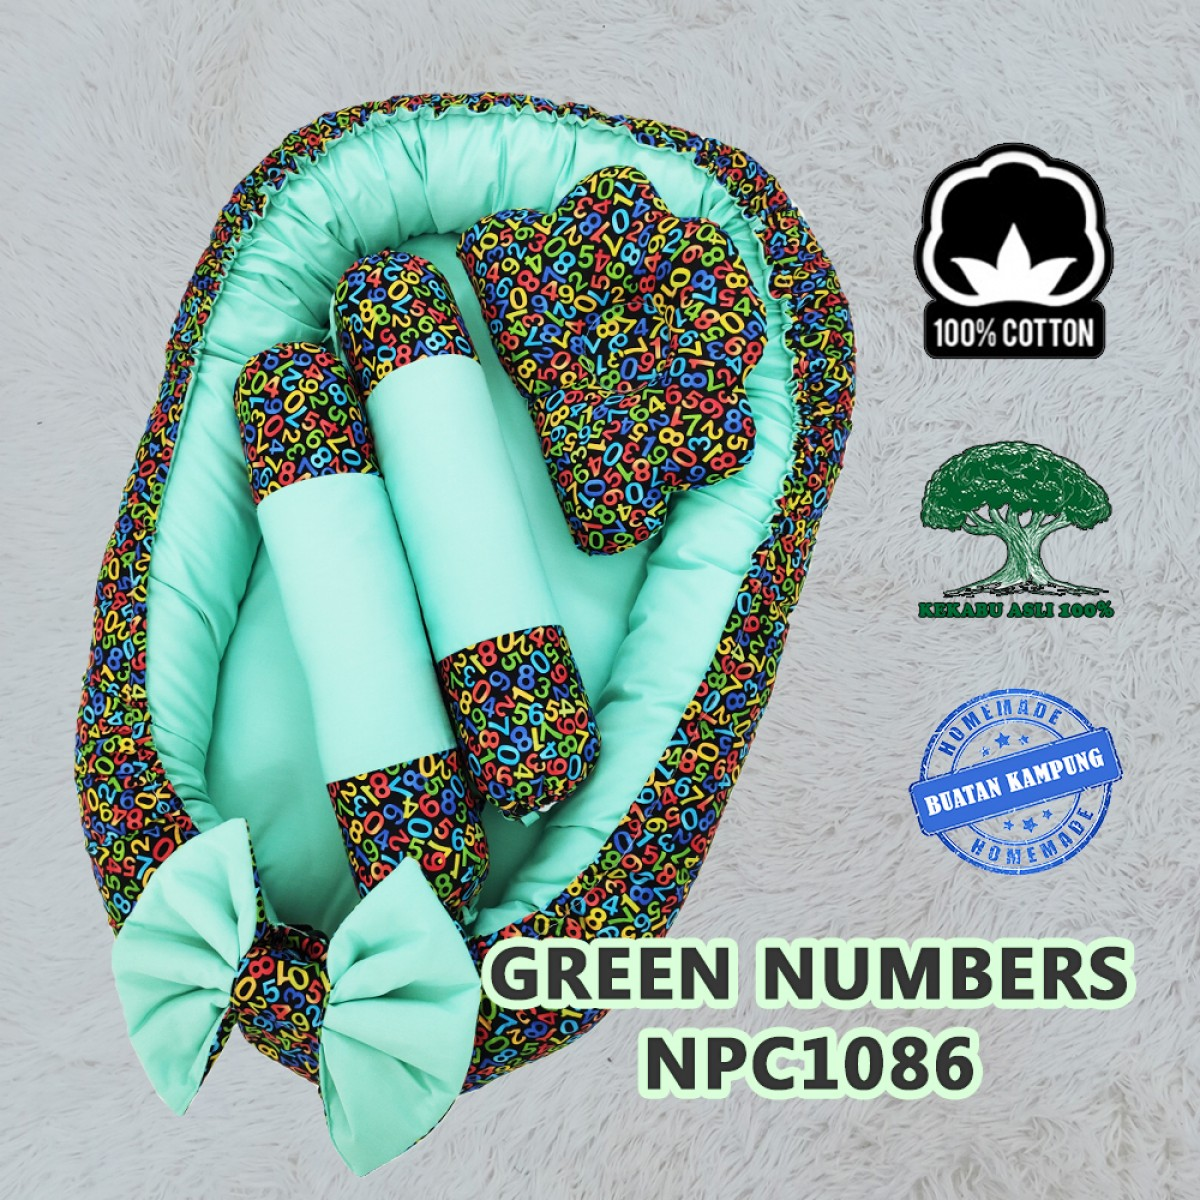 Green Numbers - Kico Baby Center